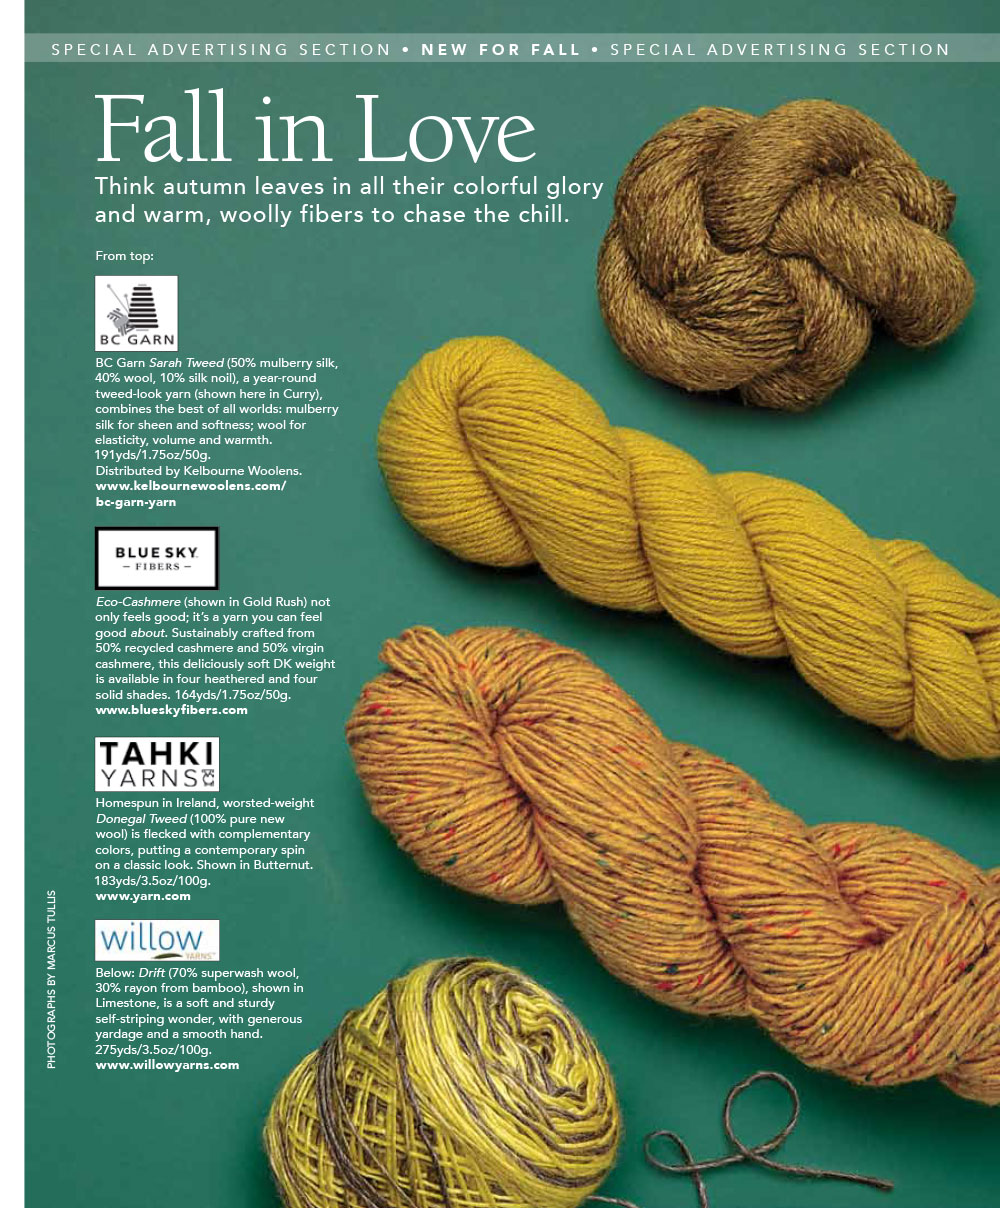 Vogue knitting the ultimate knitting experience whats new fandeluxe Gallery